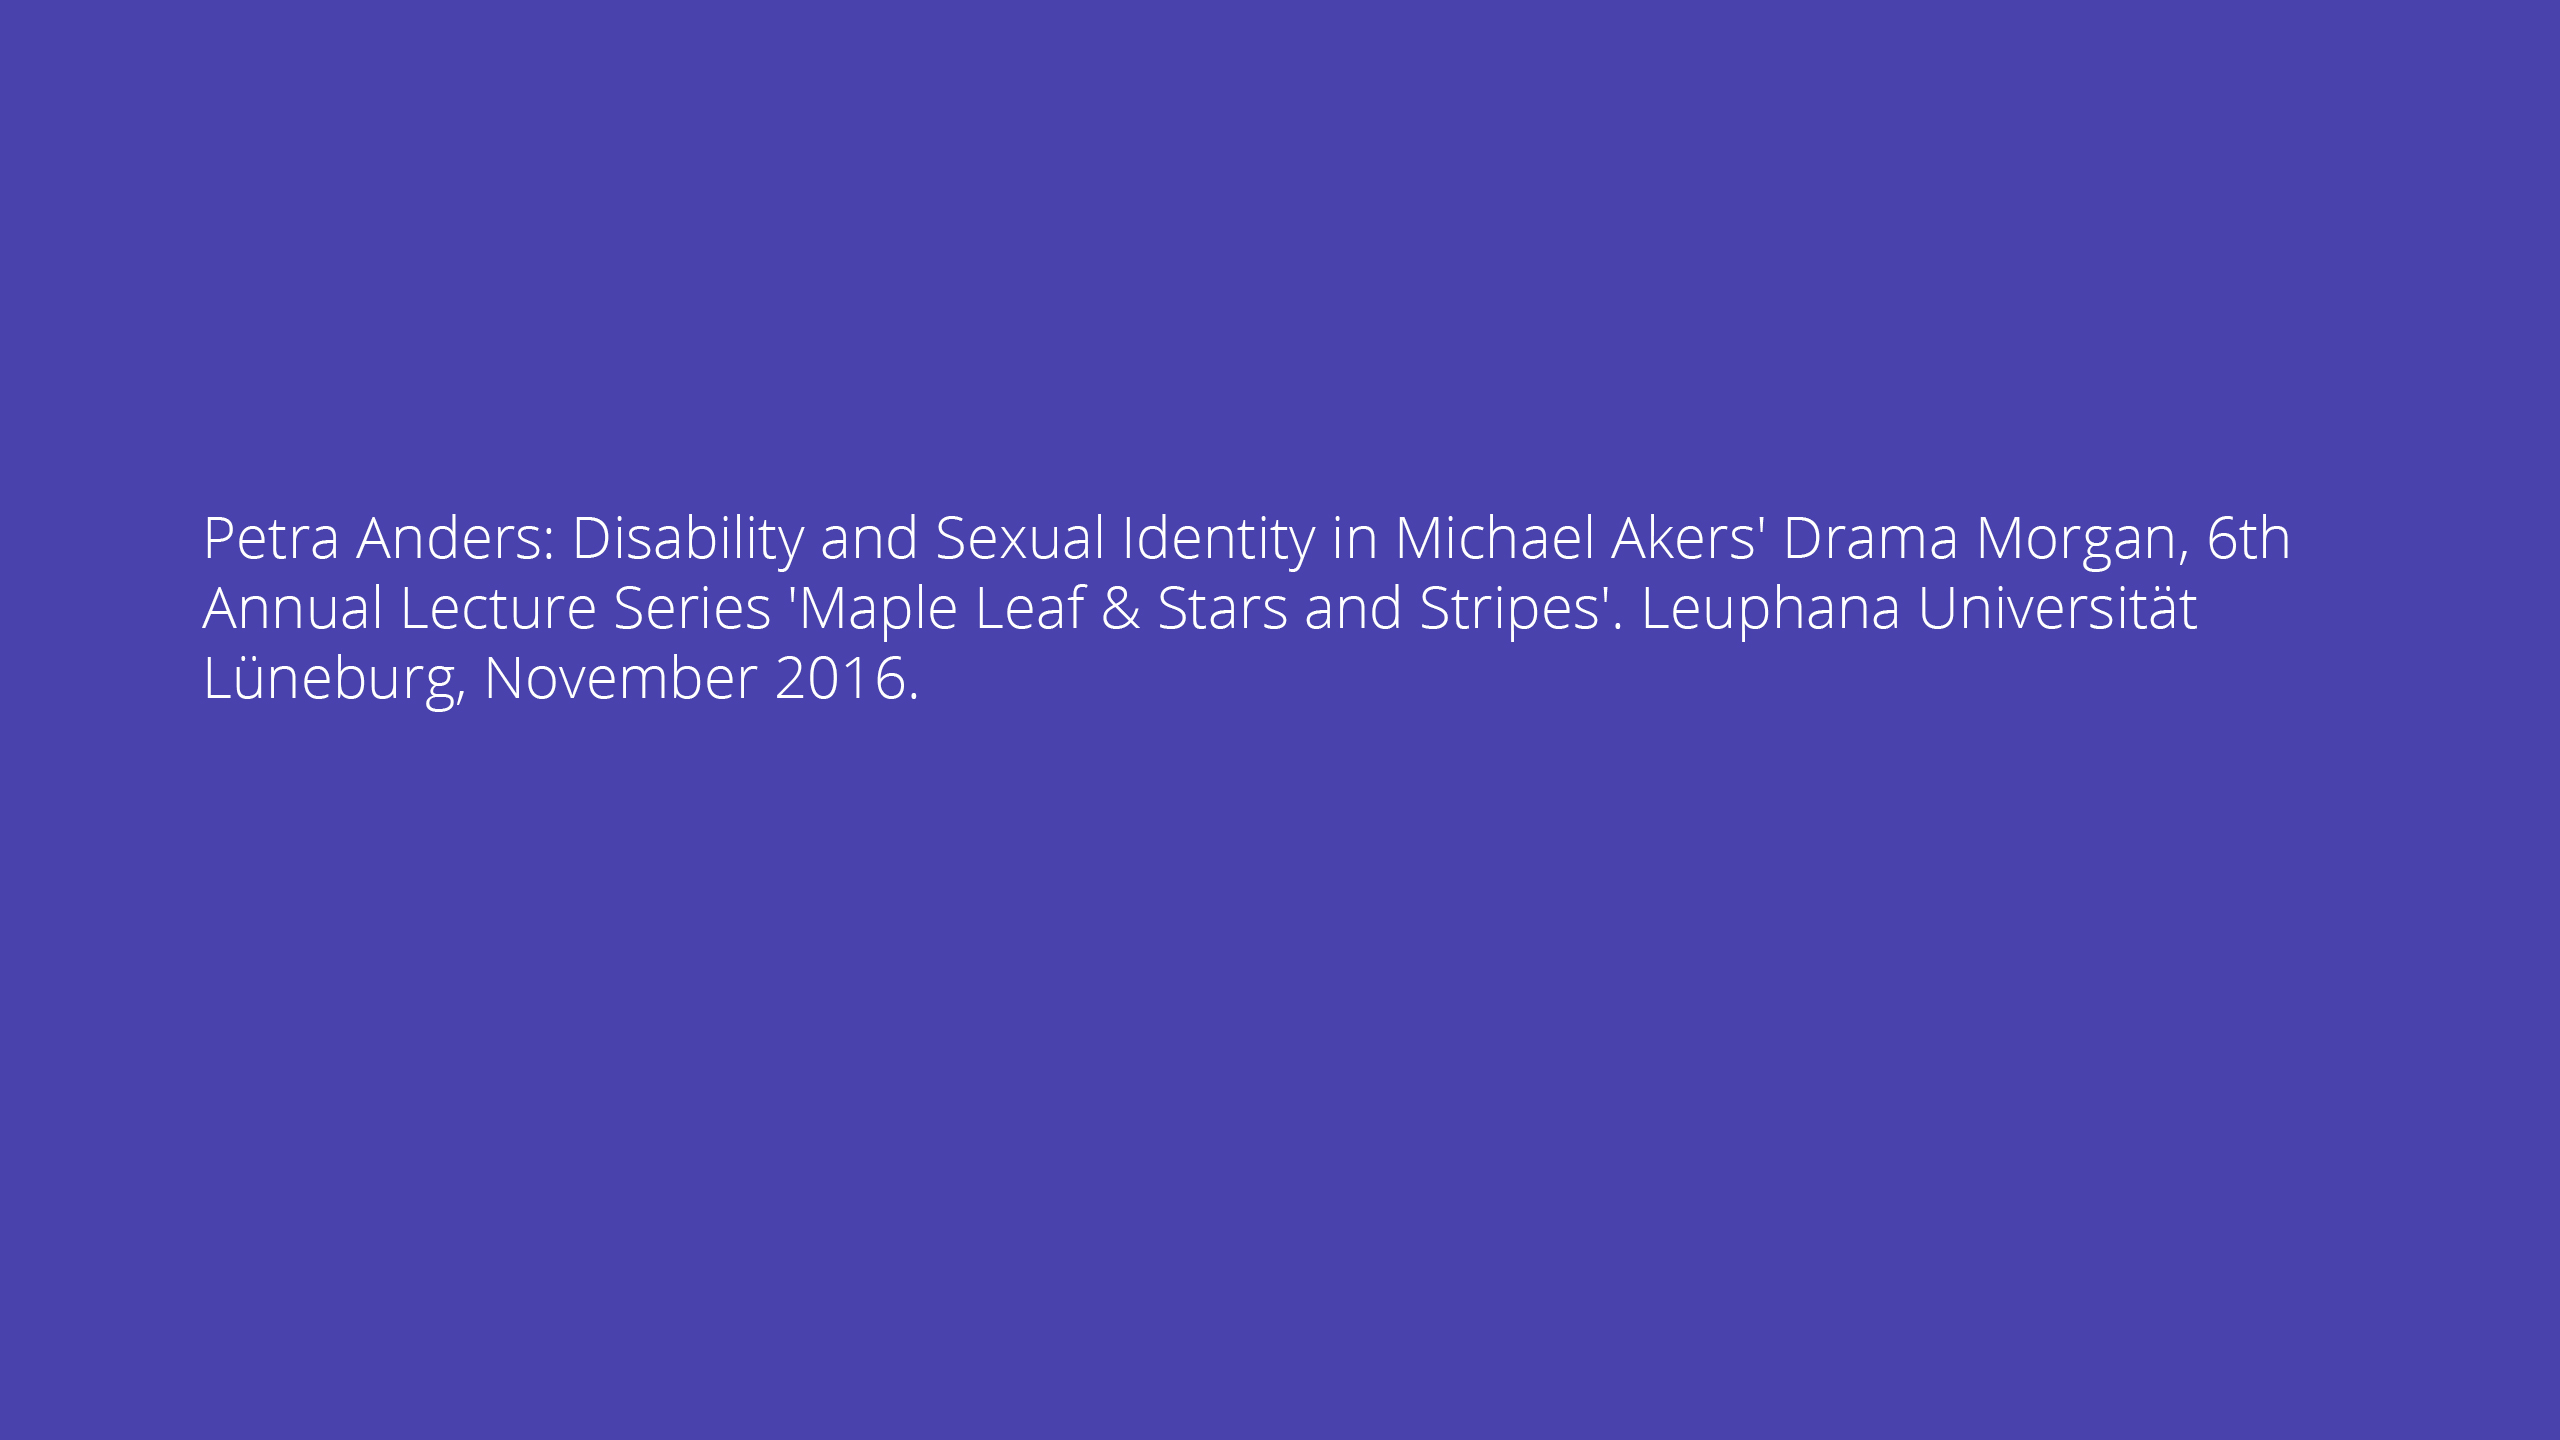 Petra Anders: Disability and Sexual Identity in Michael Akers' Drama Morgan